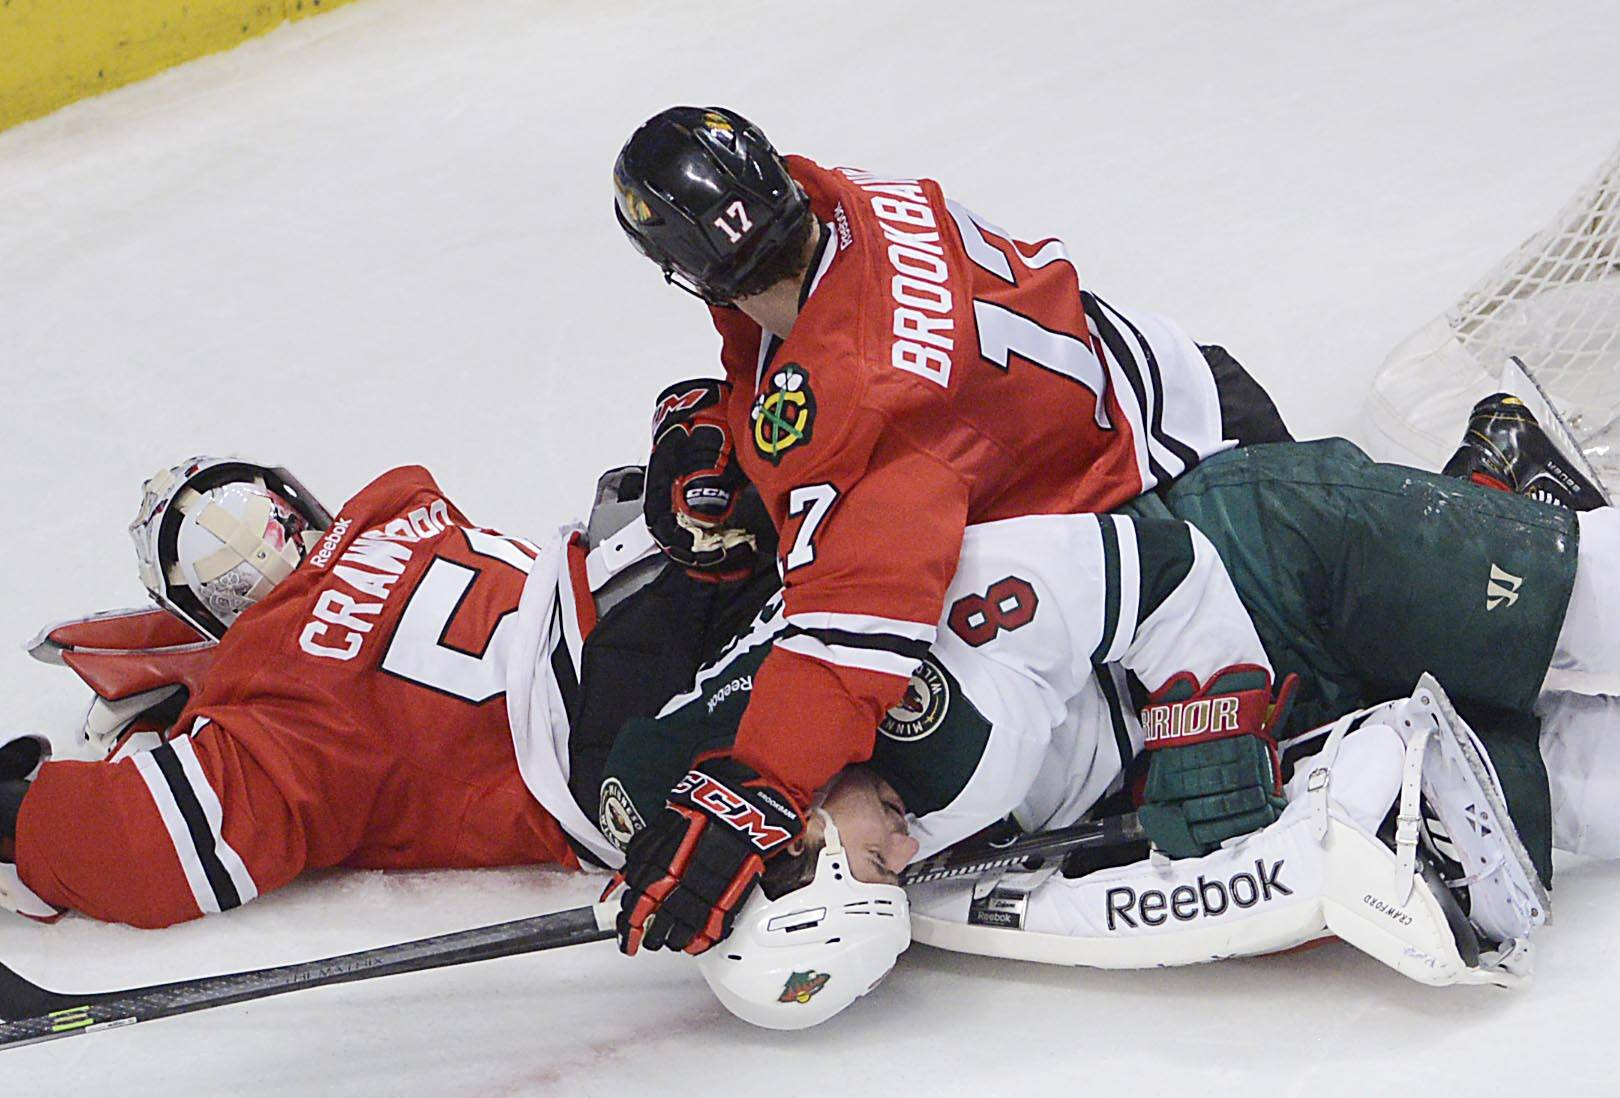 Blackhawks defenseman Sheldon Brookbank pushes Minnesota center Cody McCormick to the ice on top of goalie Corey Crawford in the second period Sunday night in Game 5.